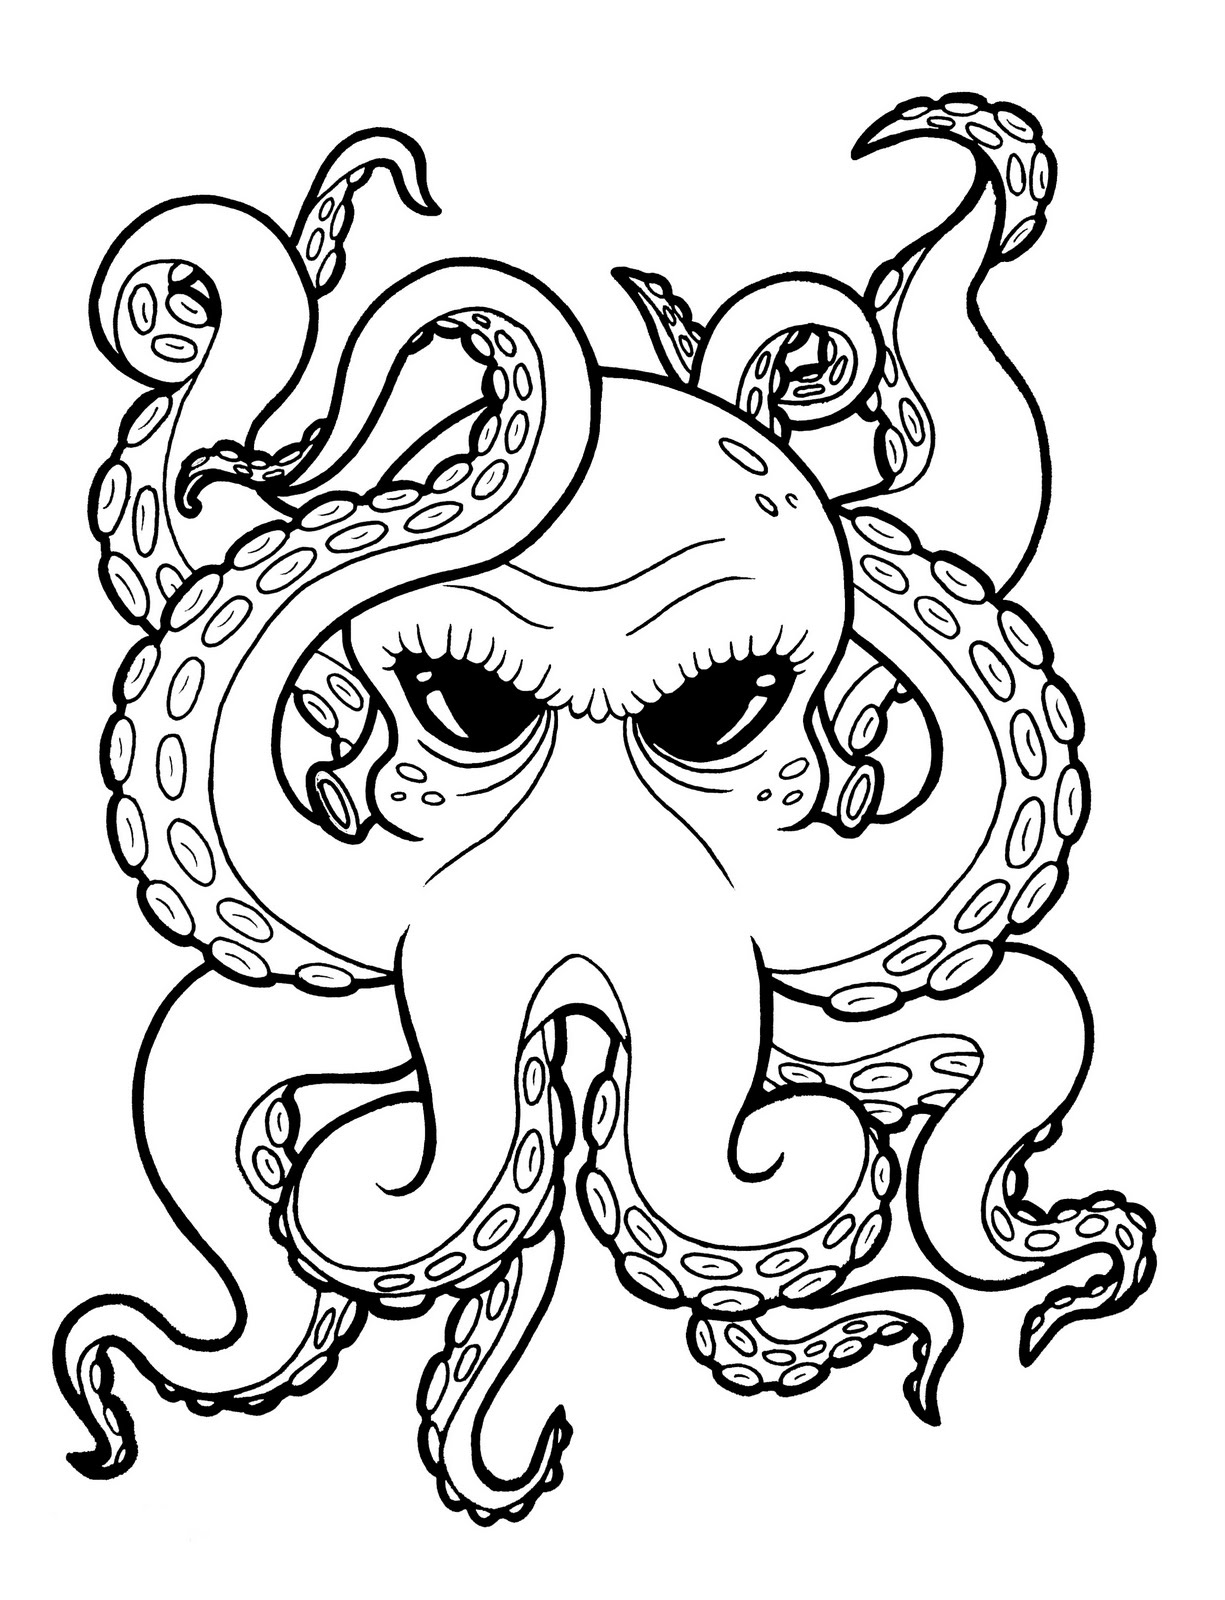 Free Octopus Outline Download Free Clip Art Free Clip